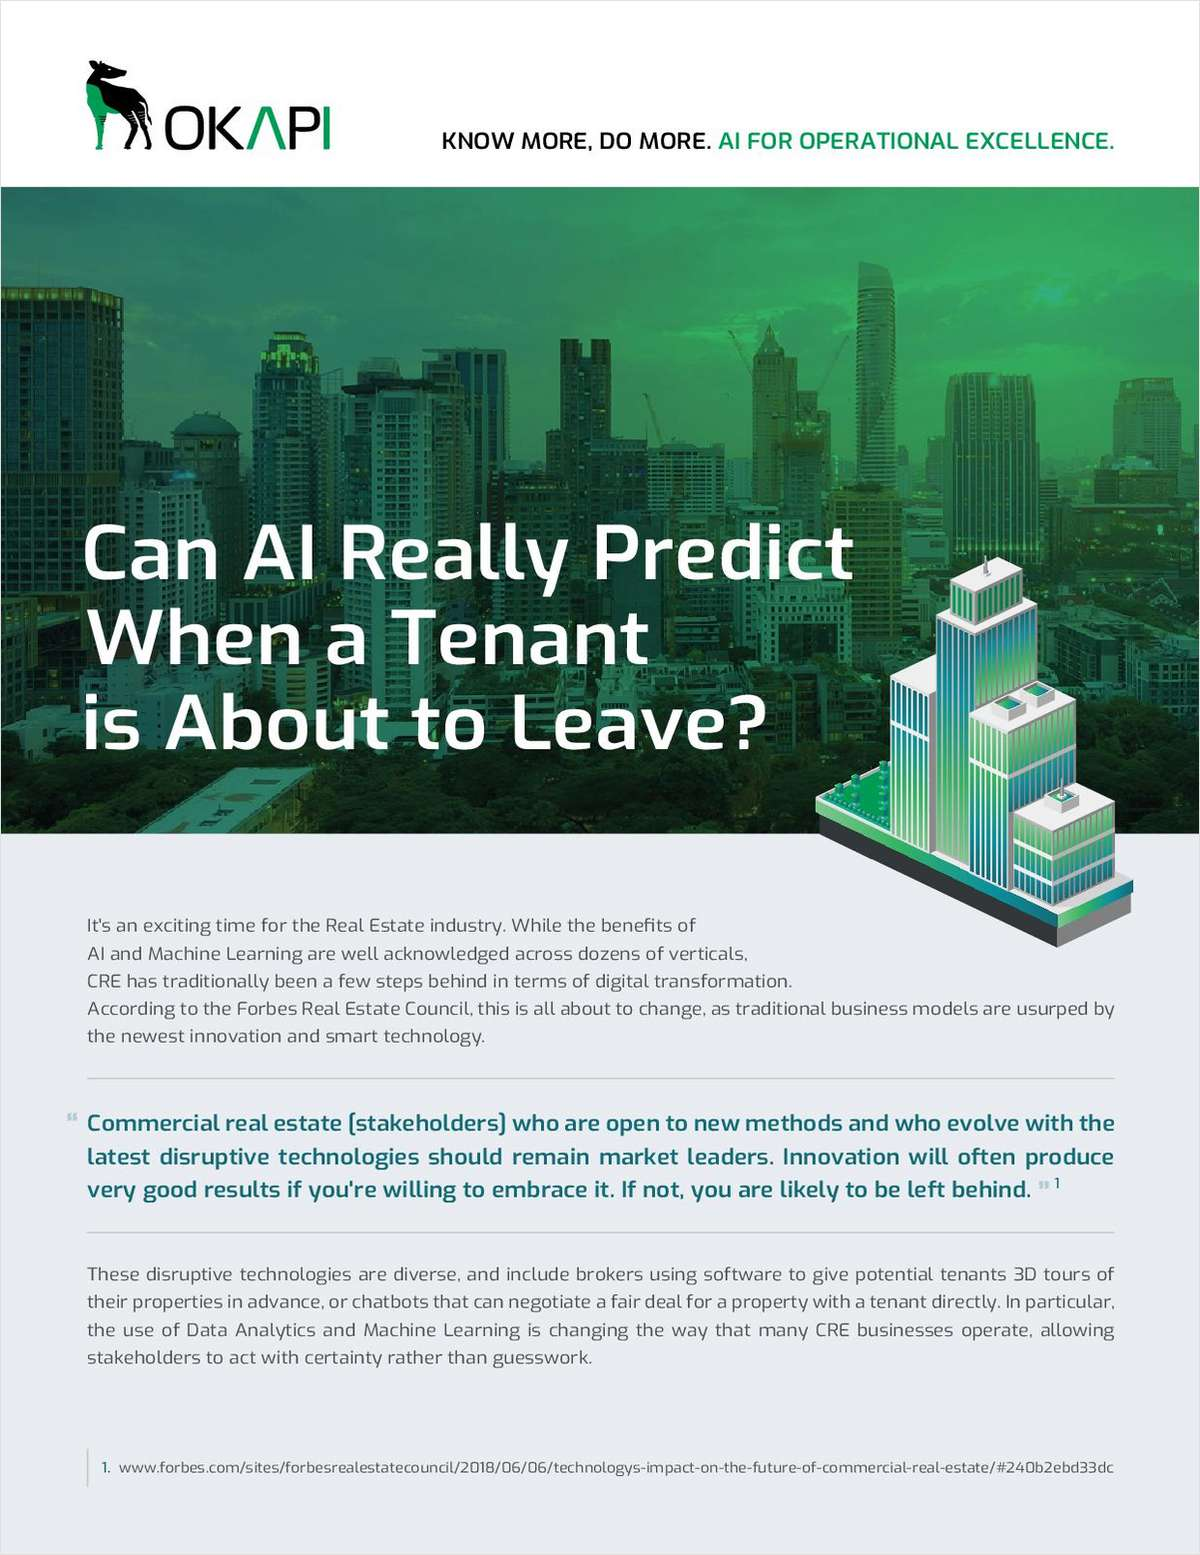 Can Artificial Intelligence Really Predict When a Tenant is About to Leave?